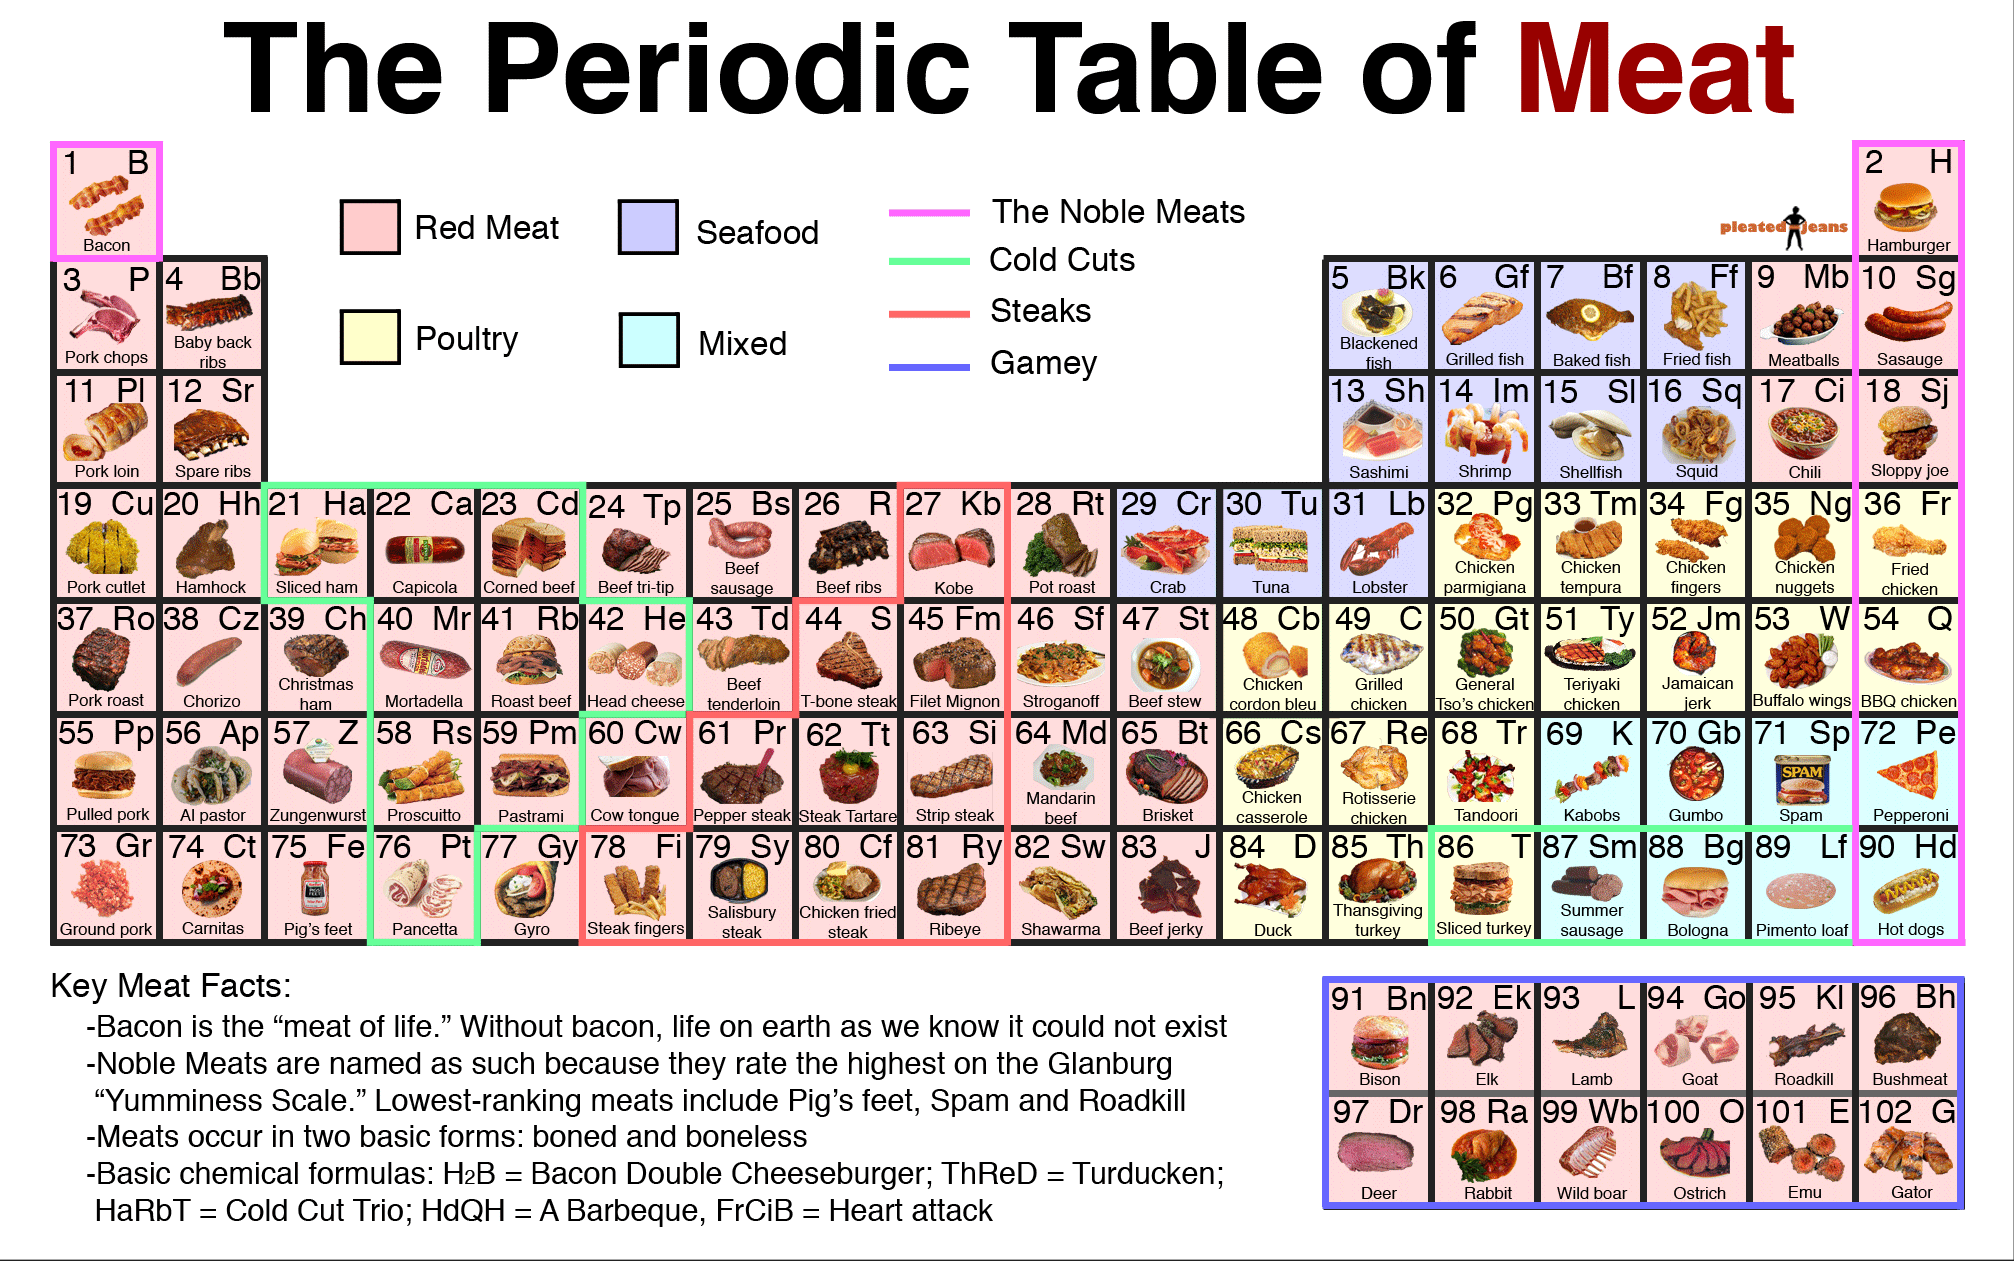 The periodic table of meat image pleated jeans a meat the periodic table of meat image pleated jeans urtaz Gallery